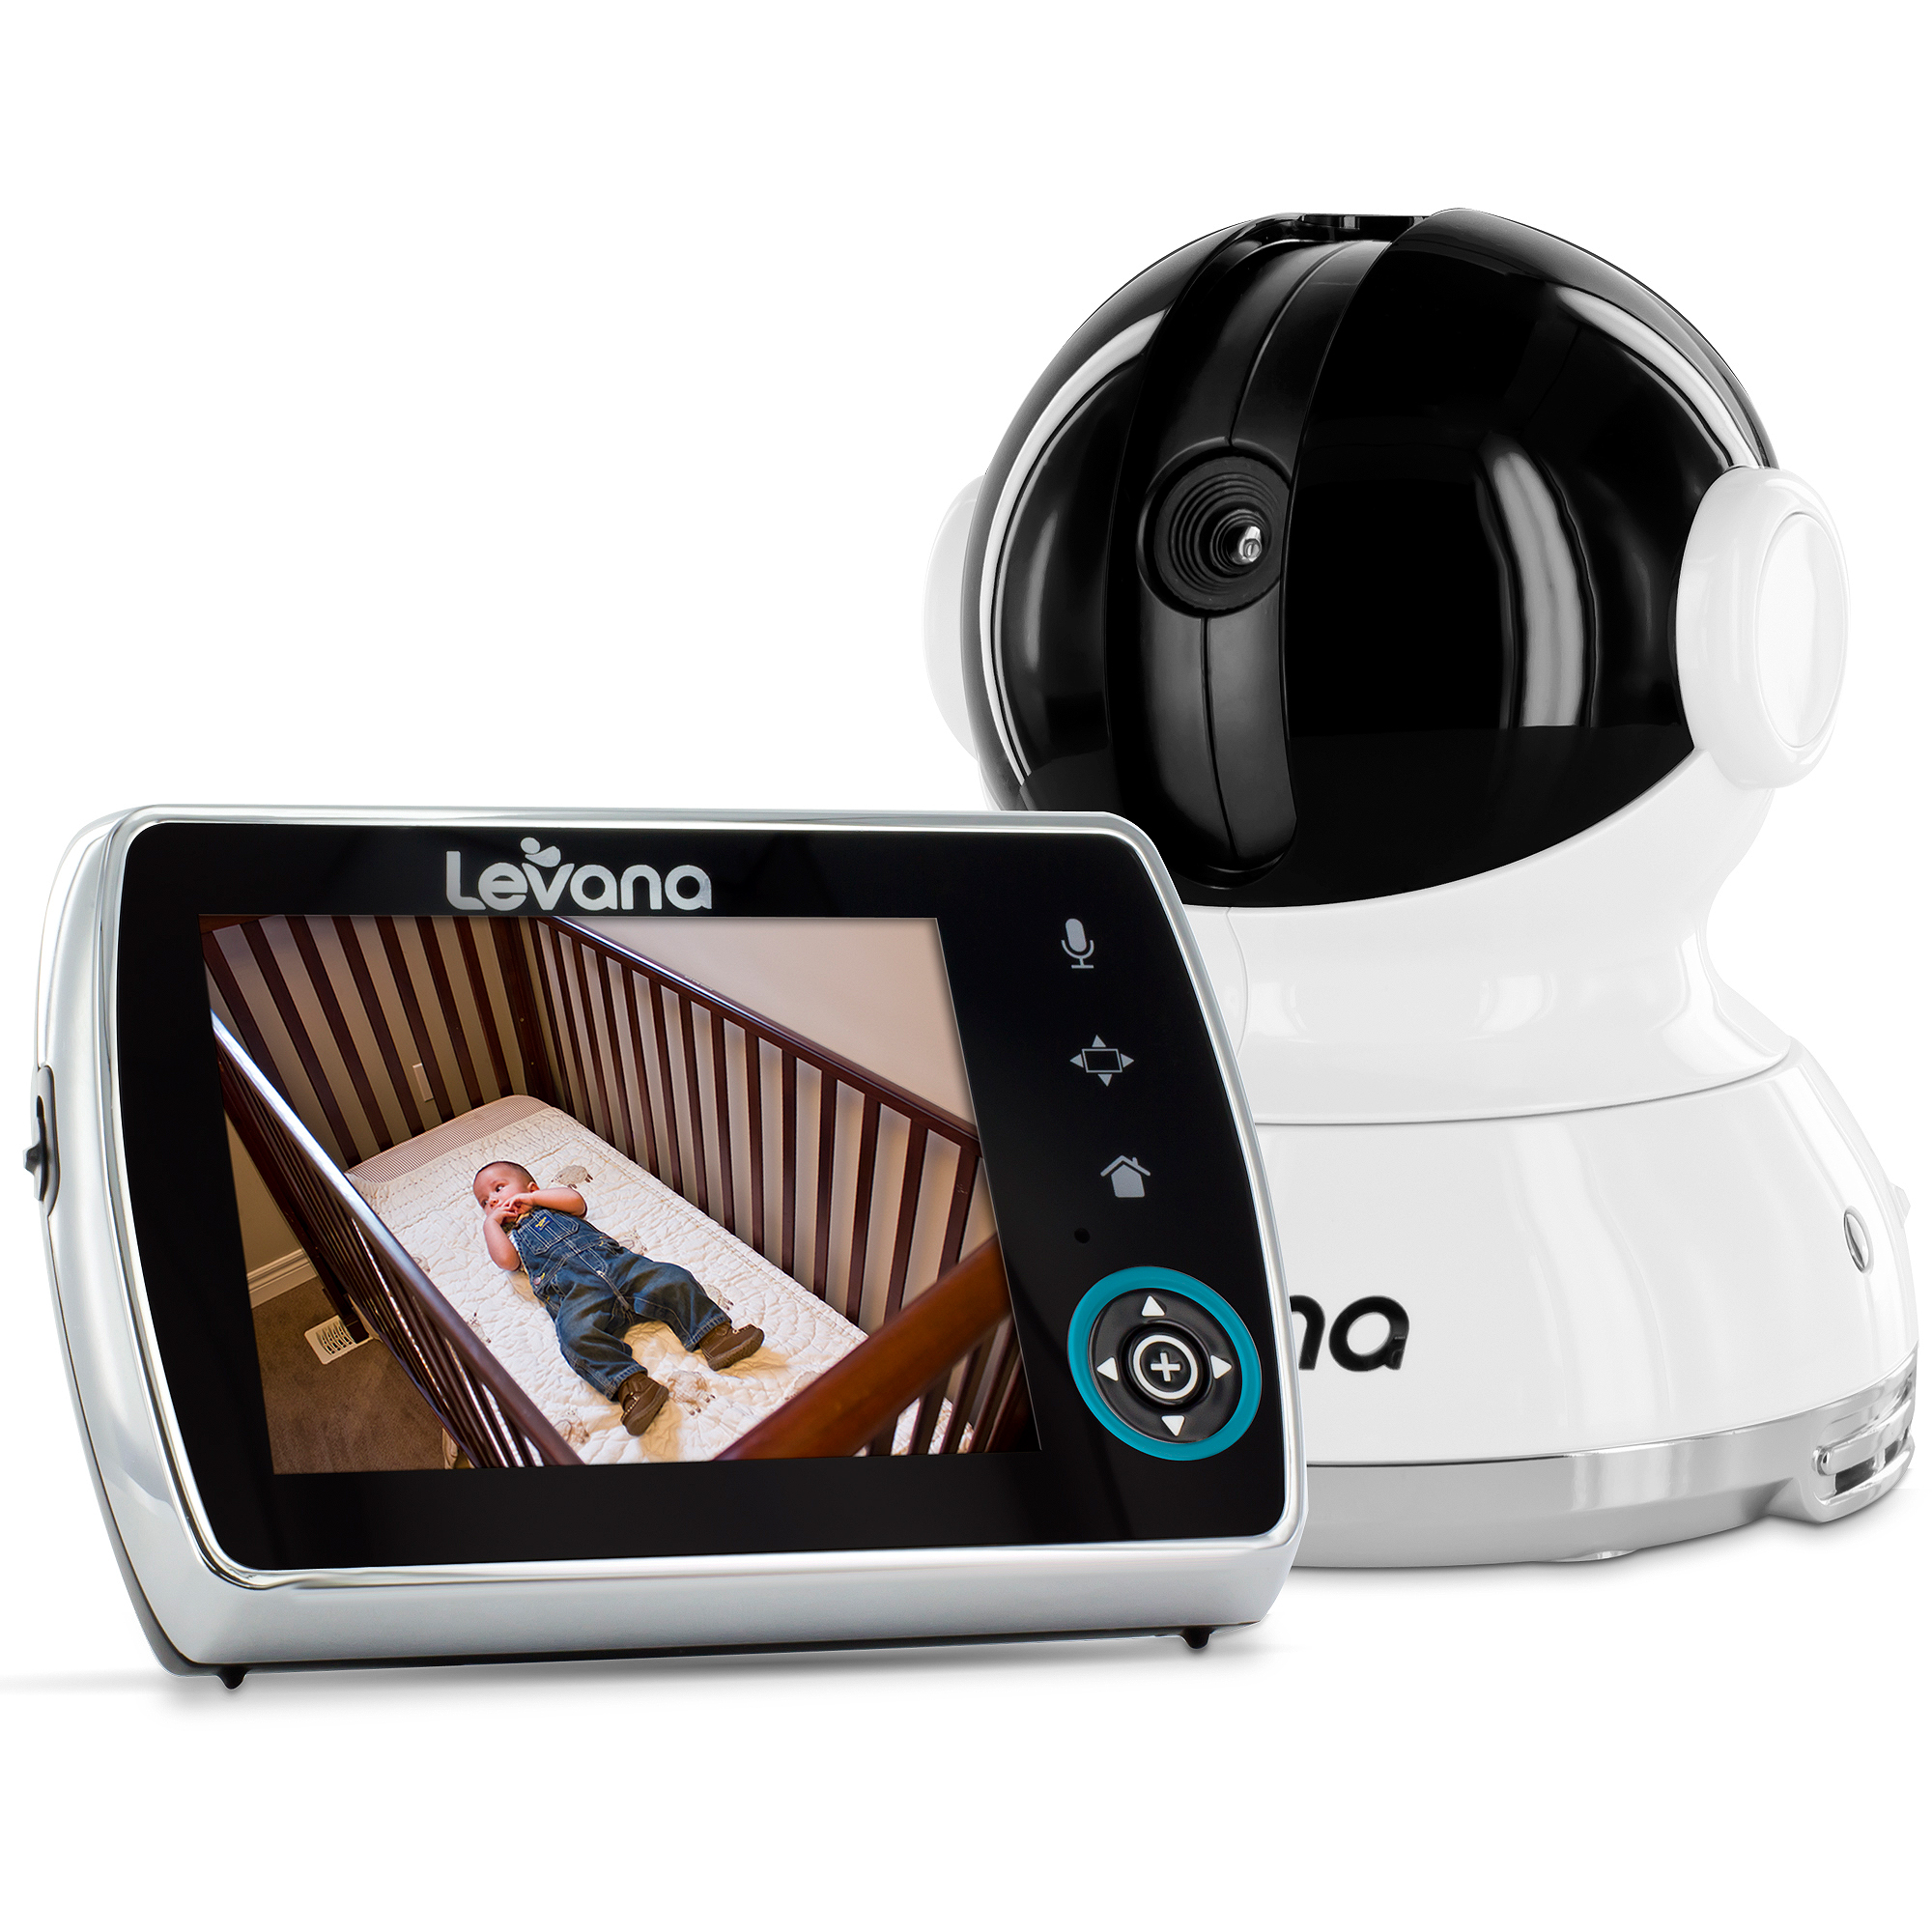 "Levana Keera 3.5"", Video Baby Monitor, 24-Hour Battery, SD Video Recording"